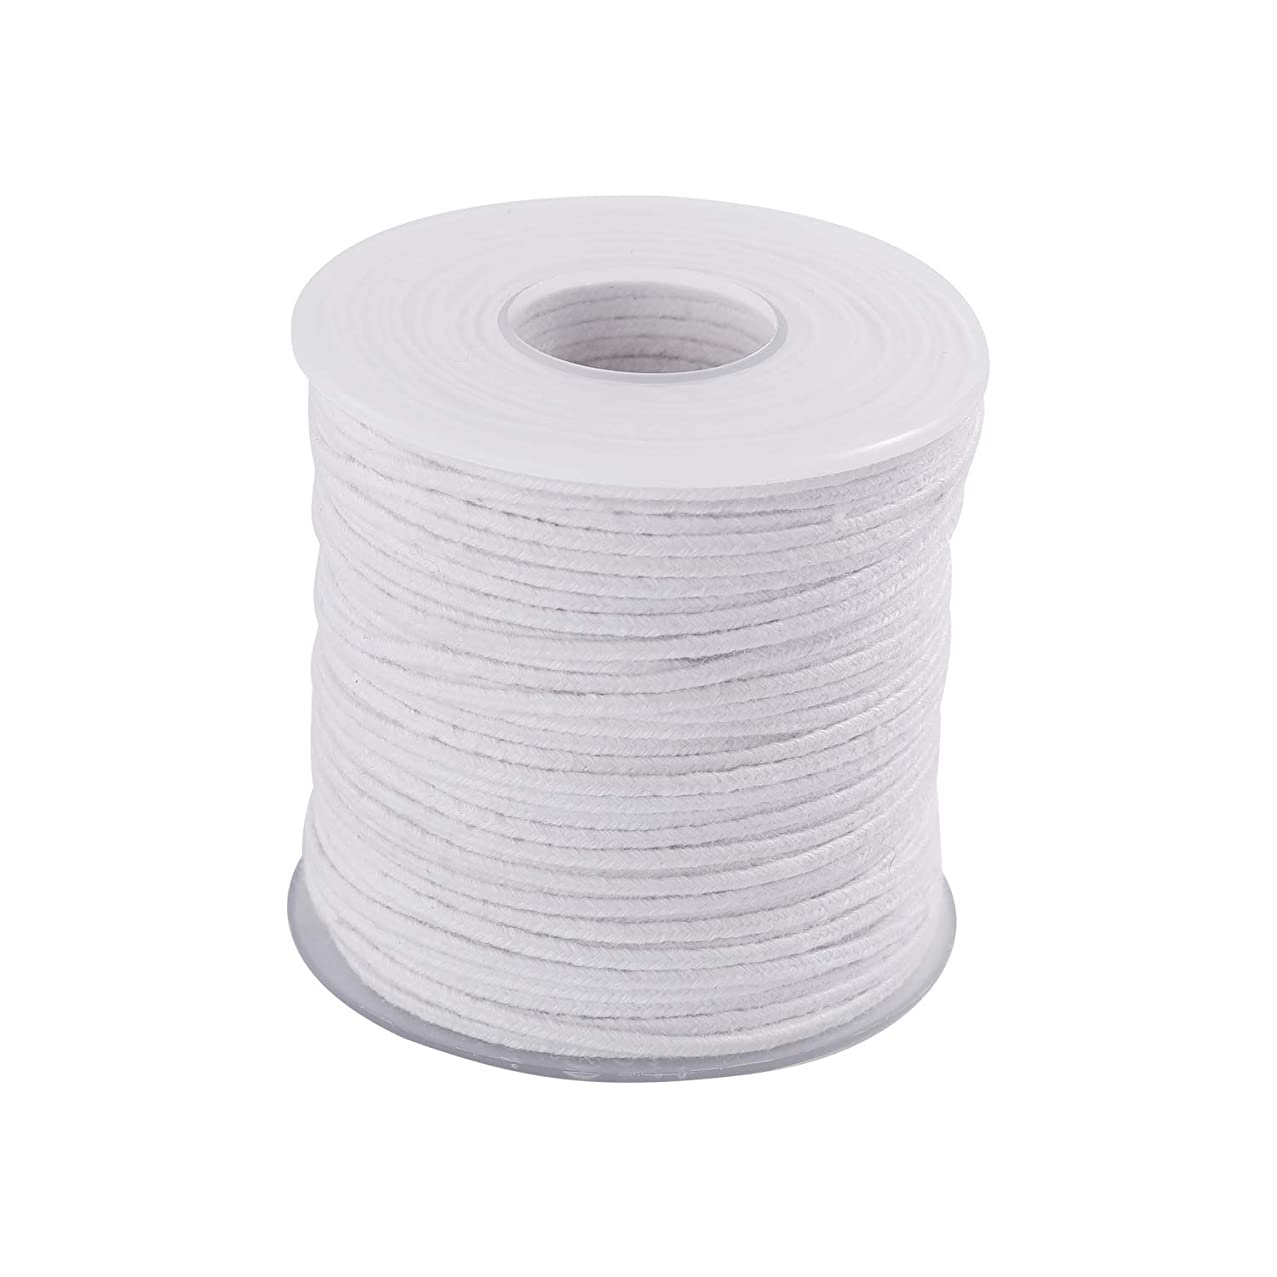 Braided Wick: 39.37 Foot Spool.Candle Wicks for Candle Making,Candle DIY